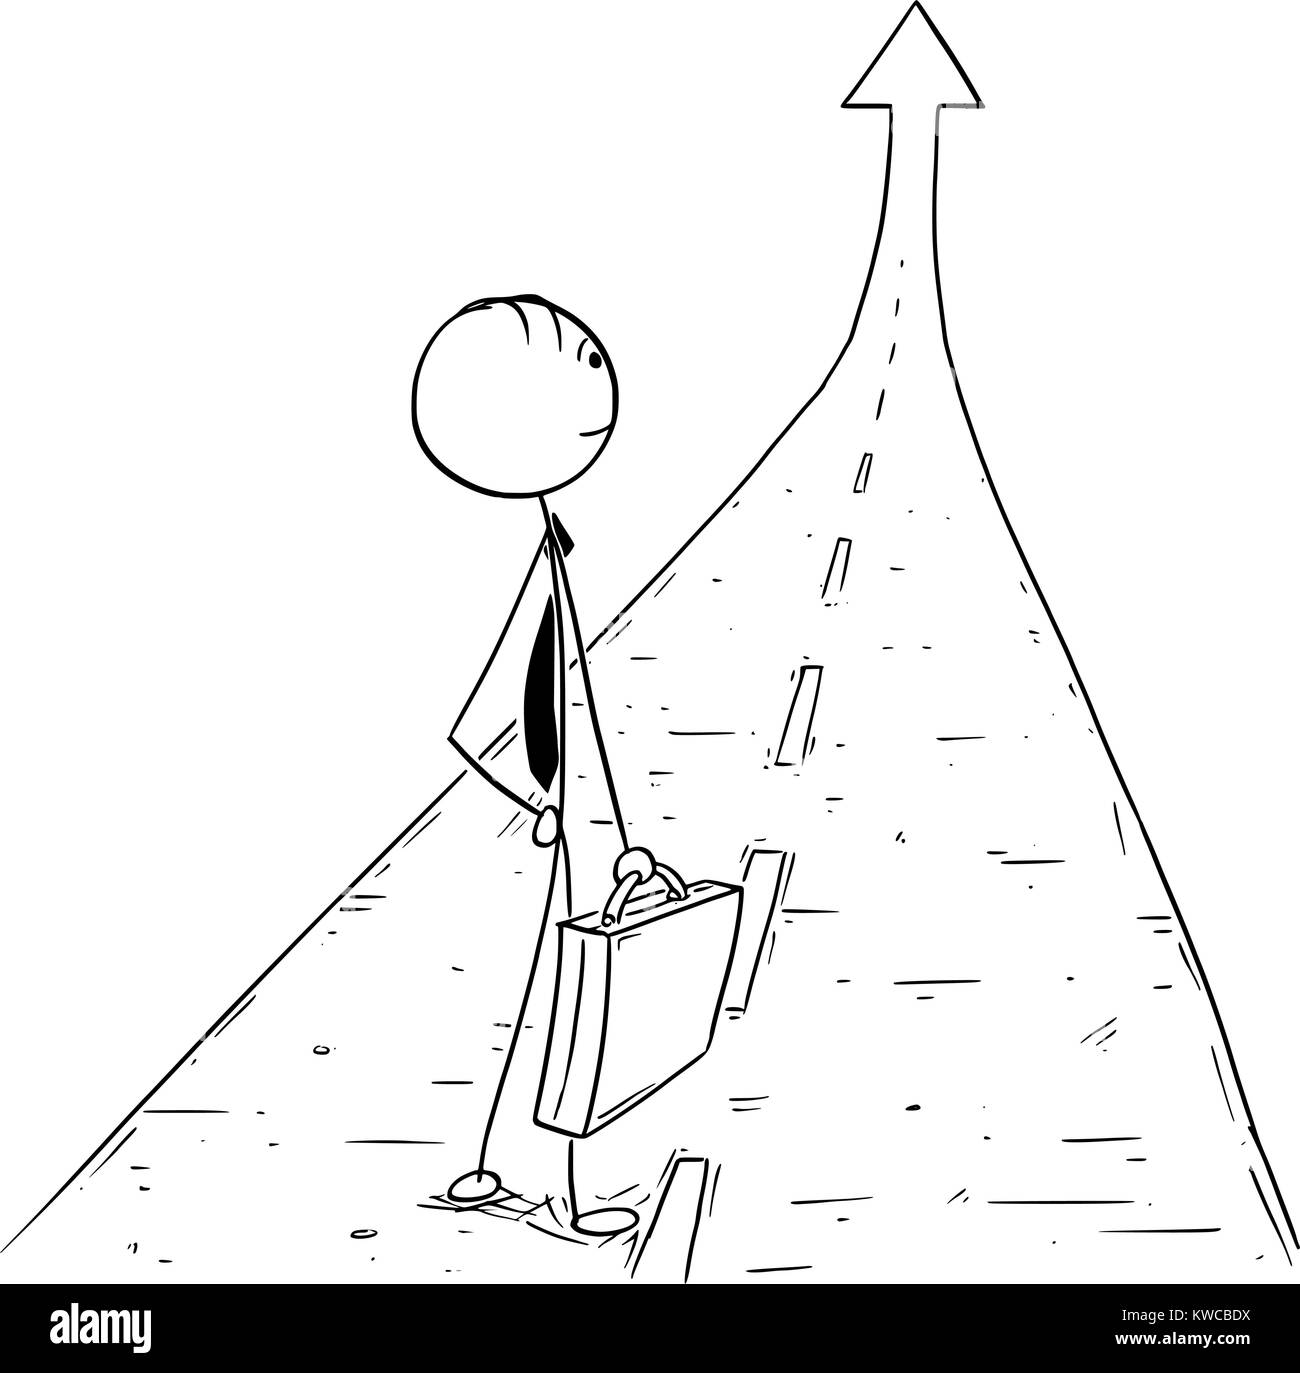 Dessin De Route cartoon stick man dessin illustration conceptuelle de businessman